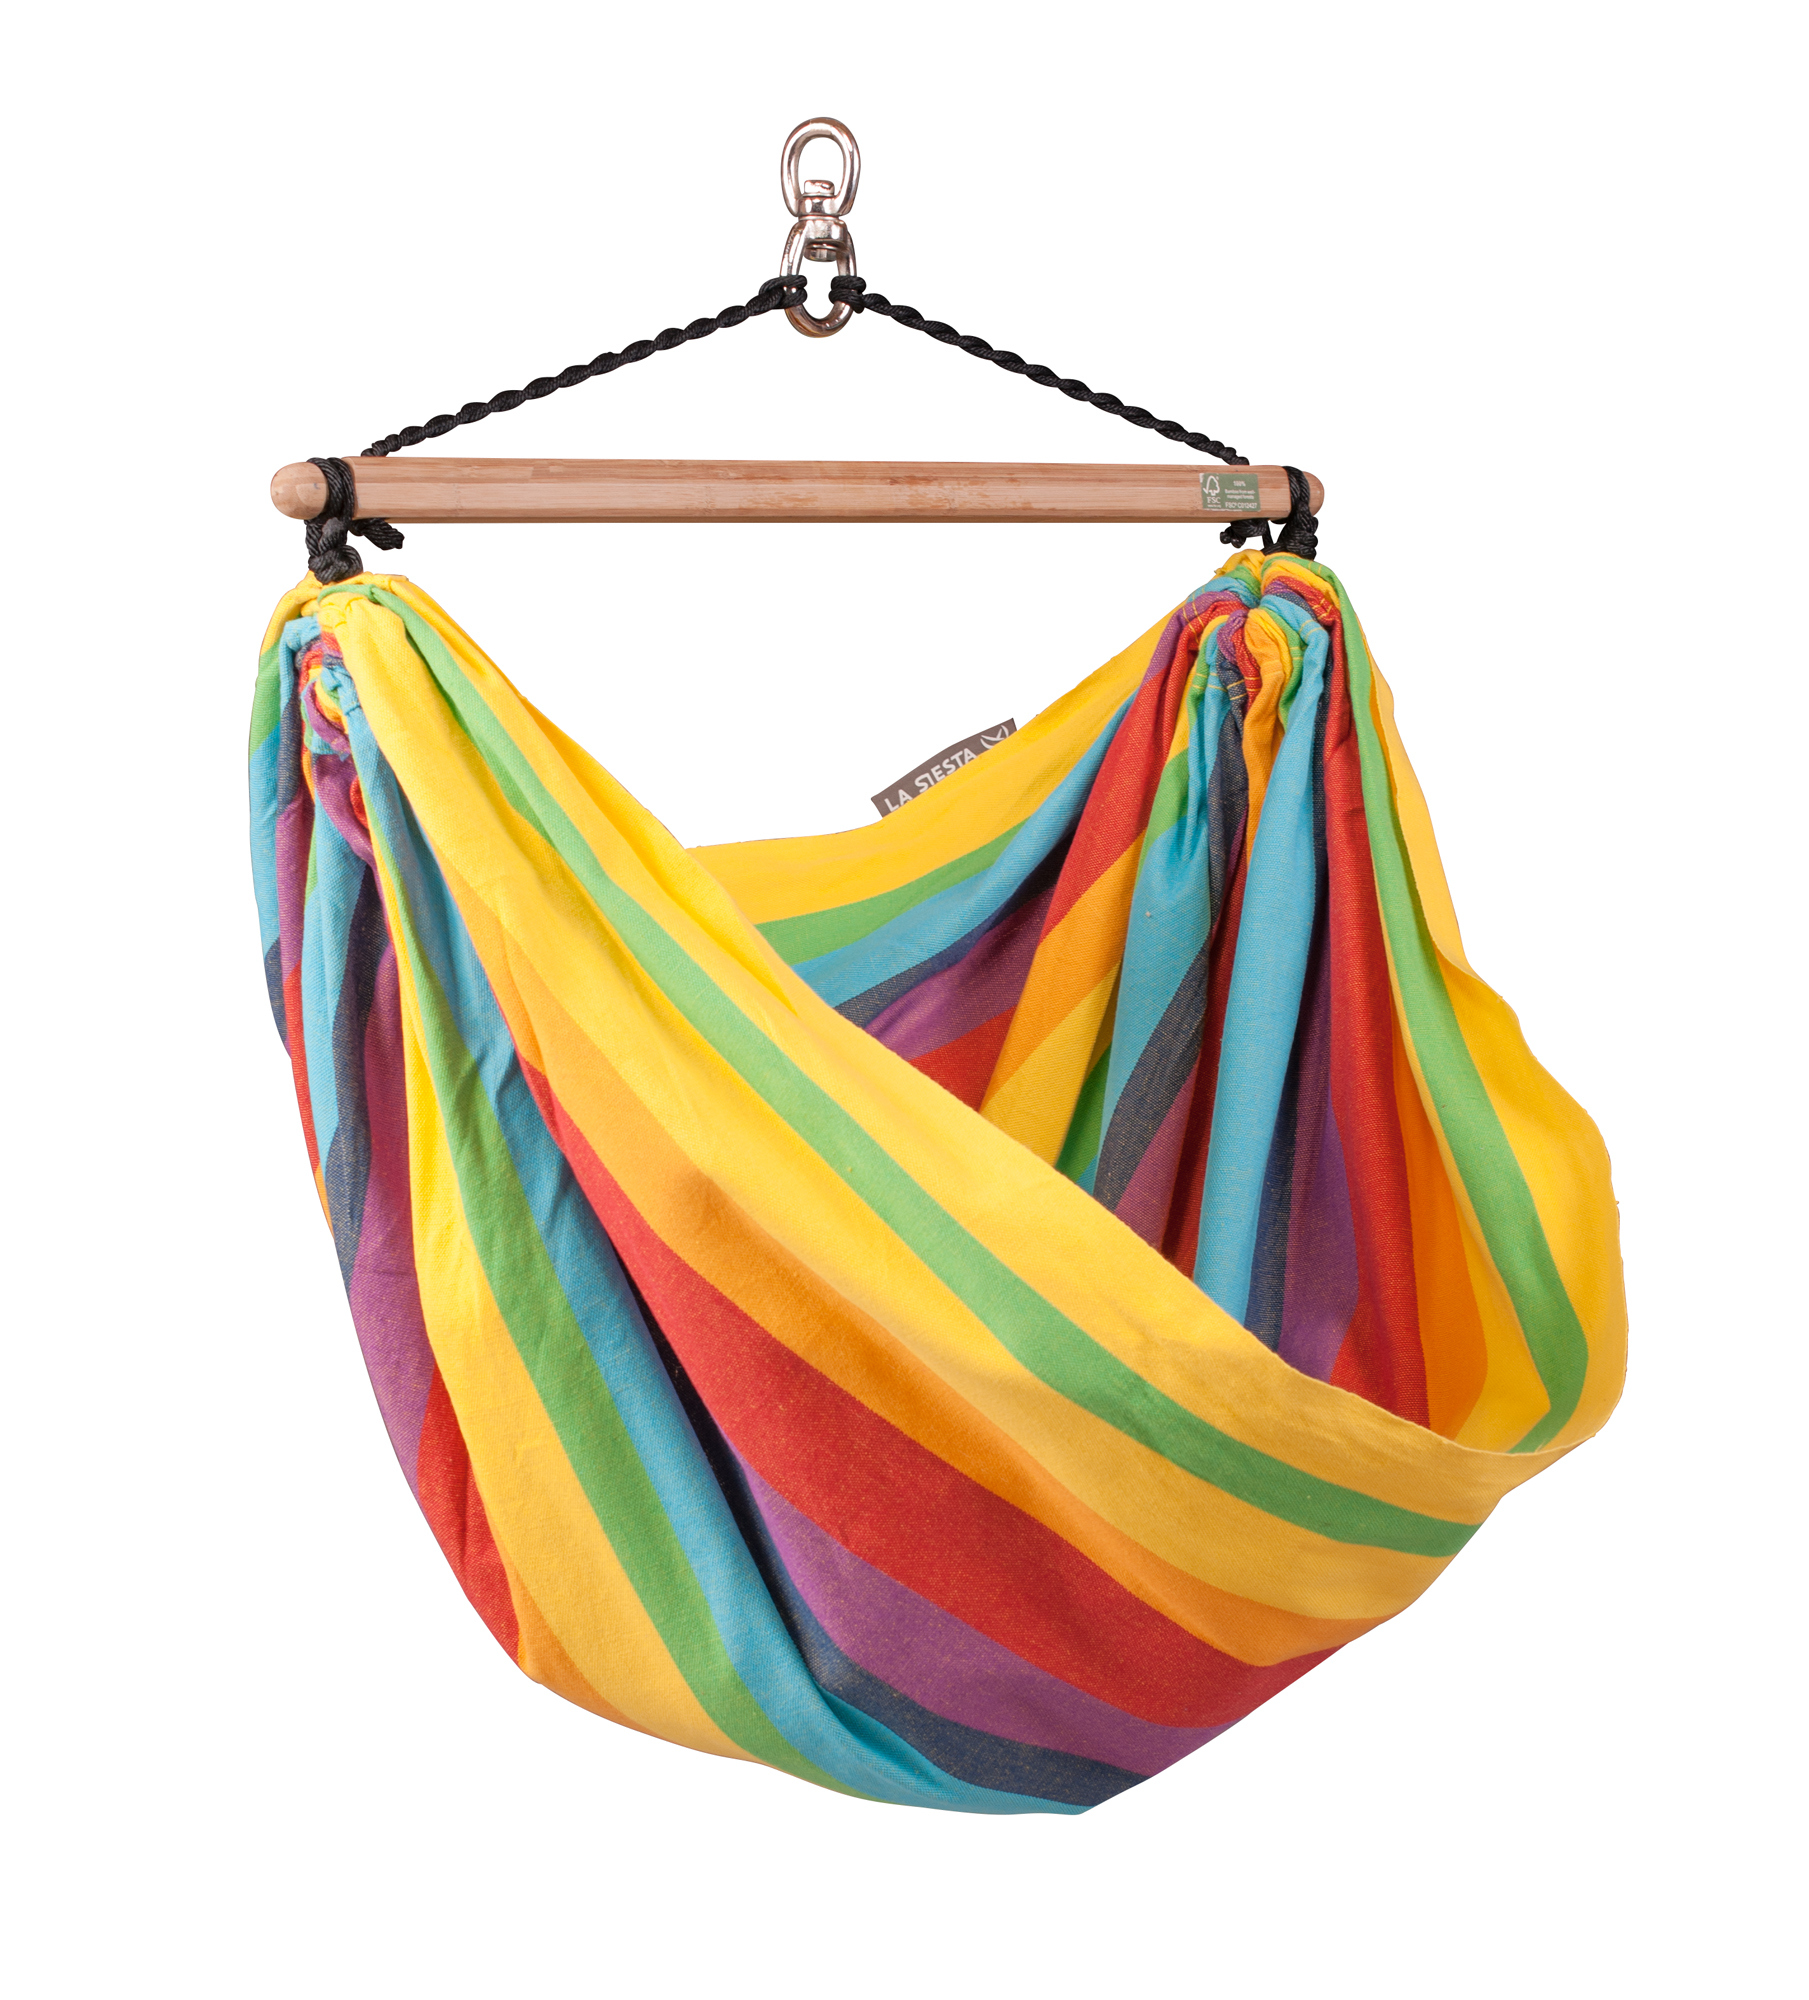 rainbow double bag hammock combo free stand with itm portable steel carrying frame